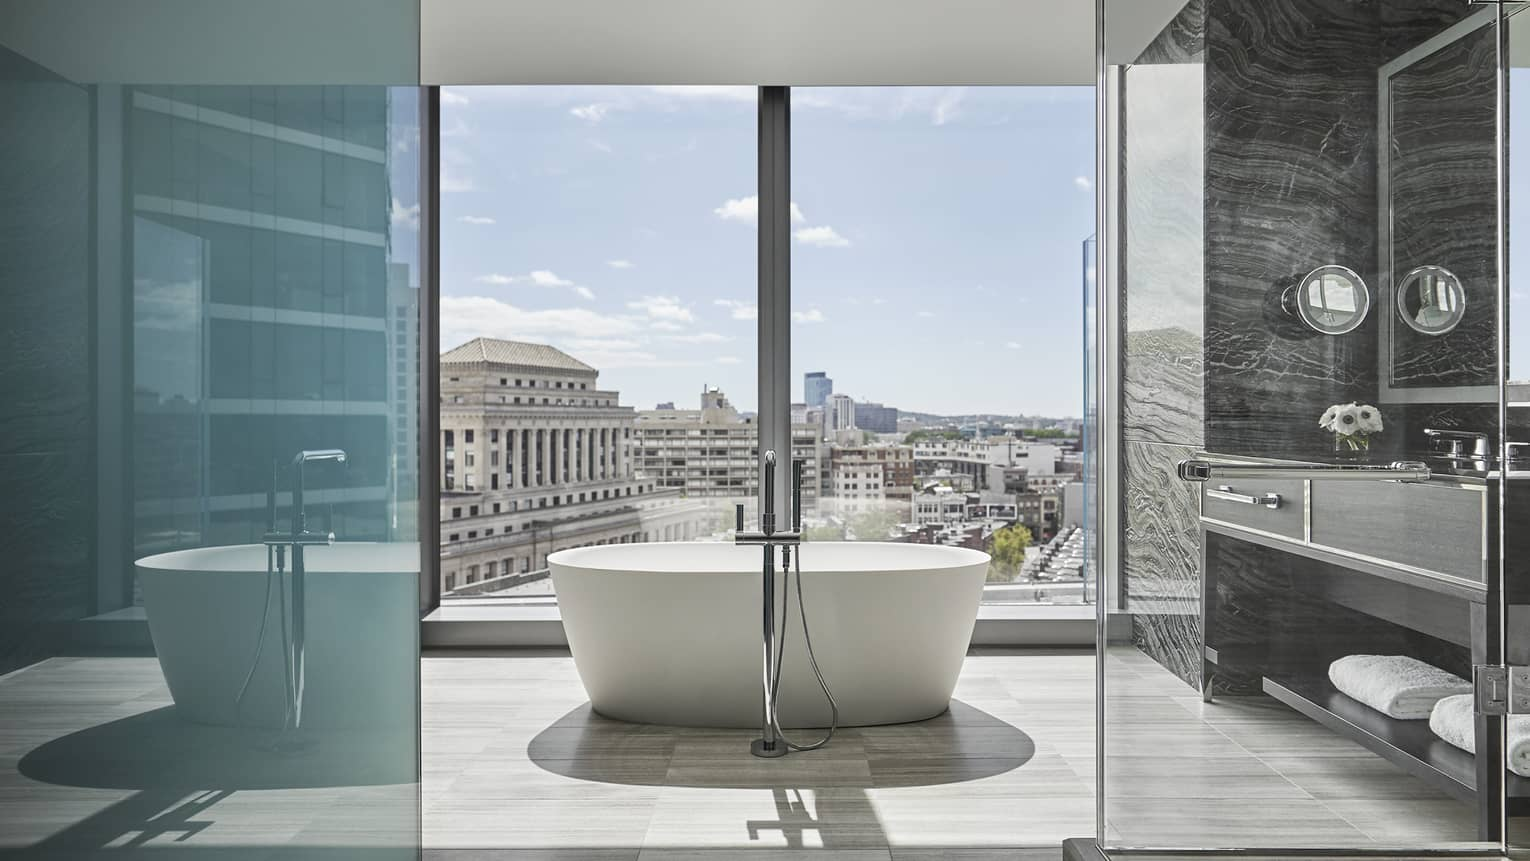 A free-standing tub sits in the middle of a large bathroom, overlooking downtown boston through floor to ceiling windows